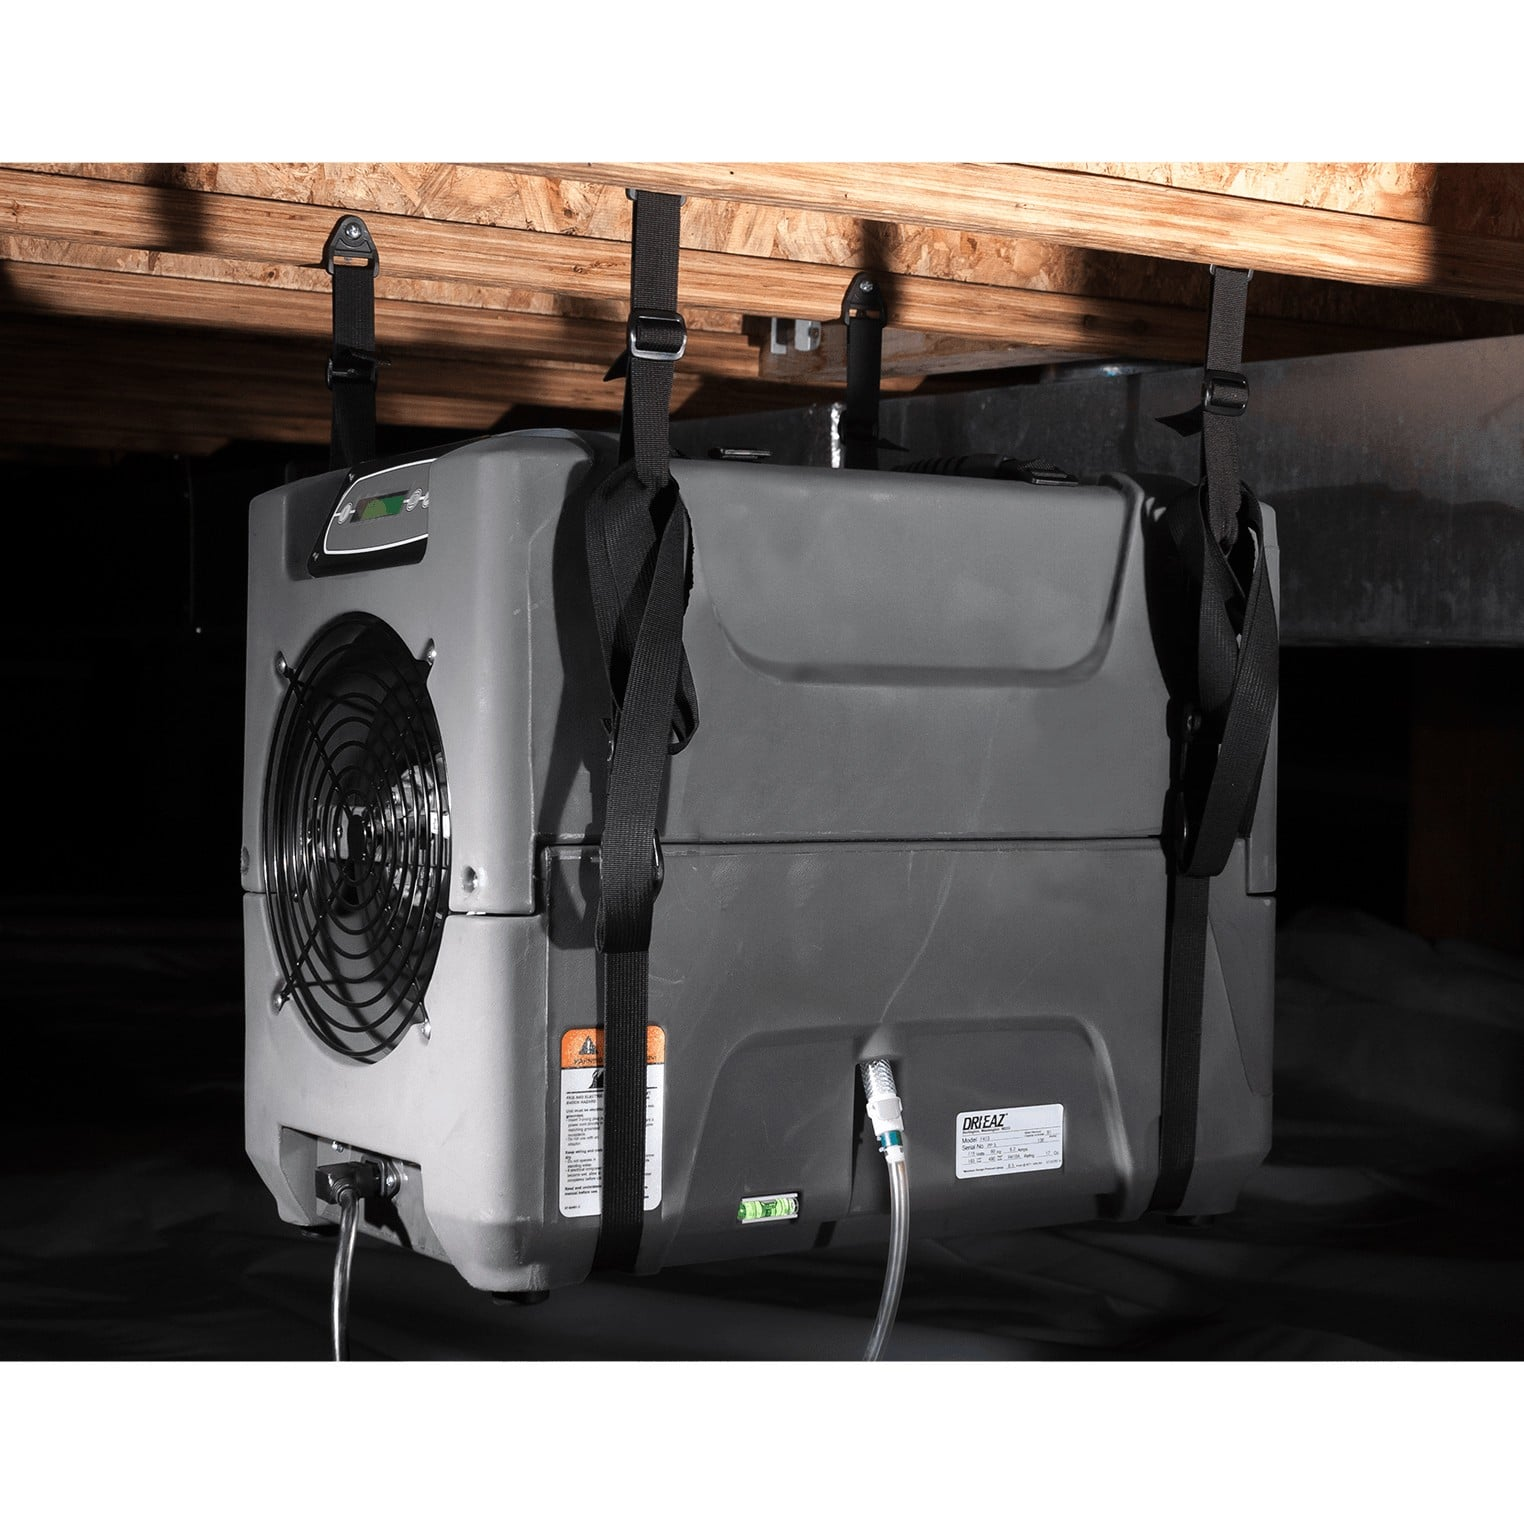 Best Dehumidifiers for Crawl Spaces